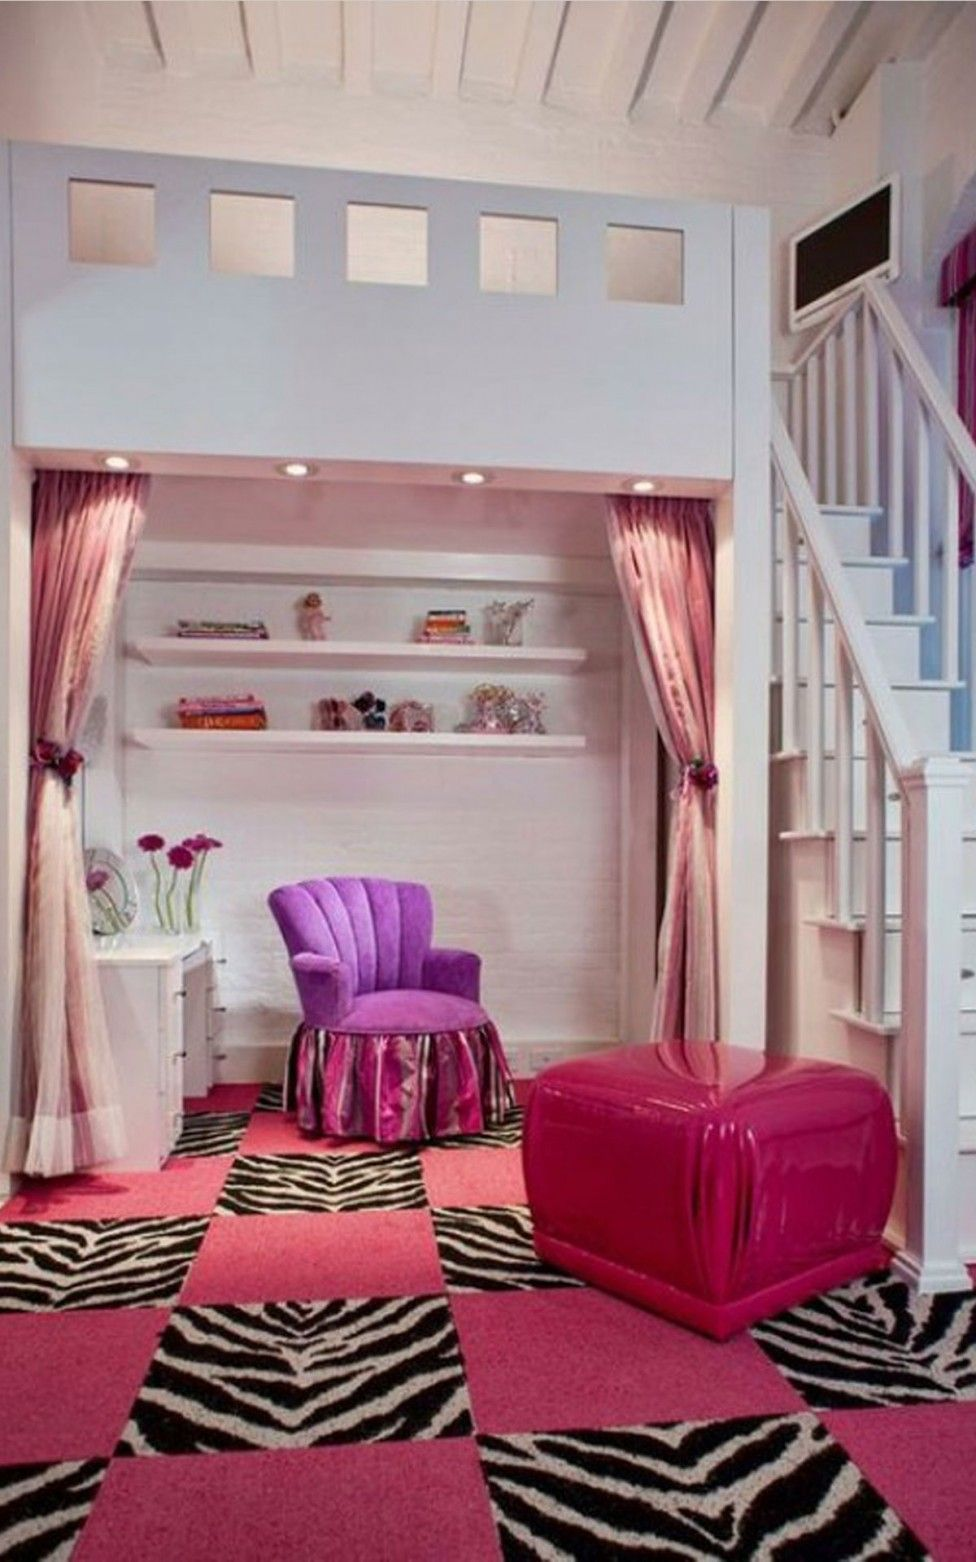 Small room ideas for girls with cute color bedroom 22 for Pretty room decor